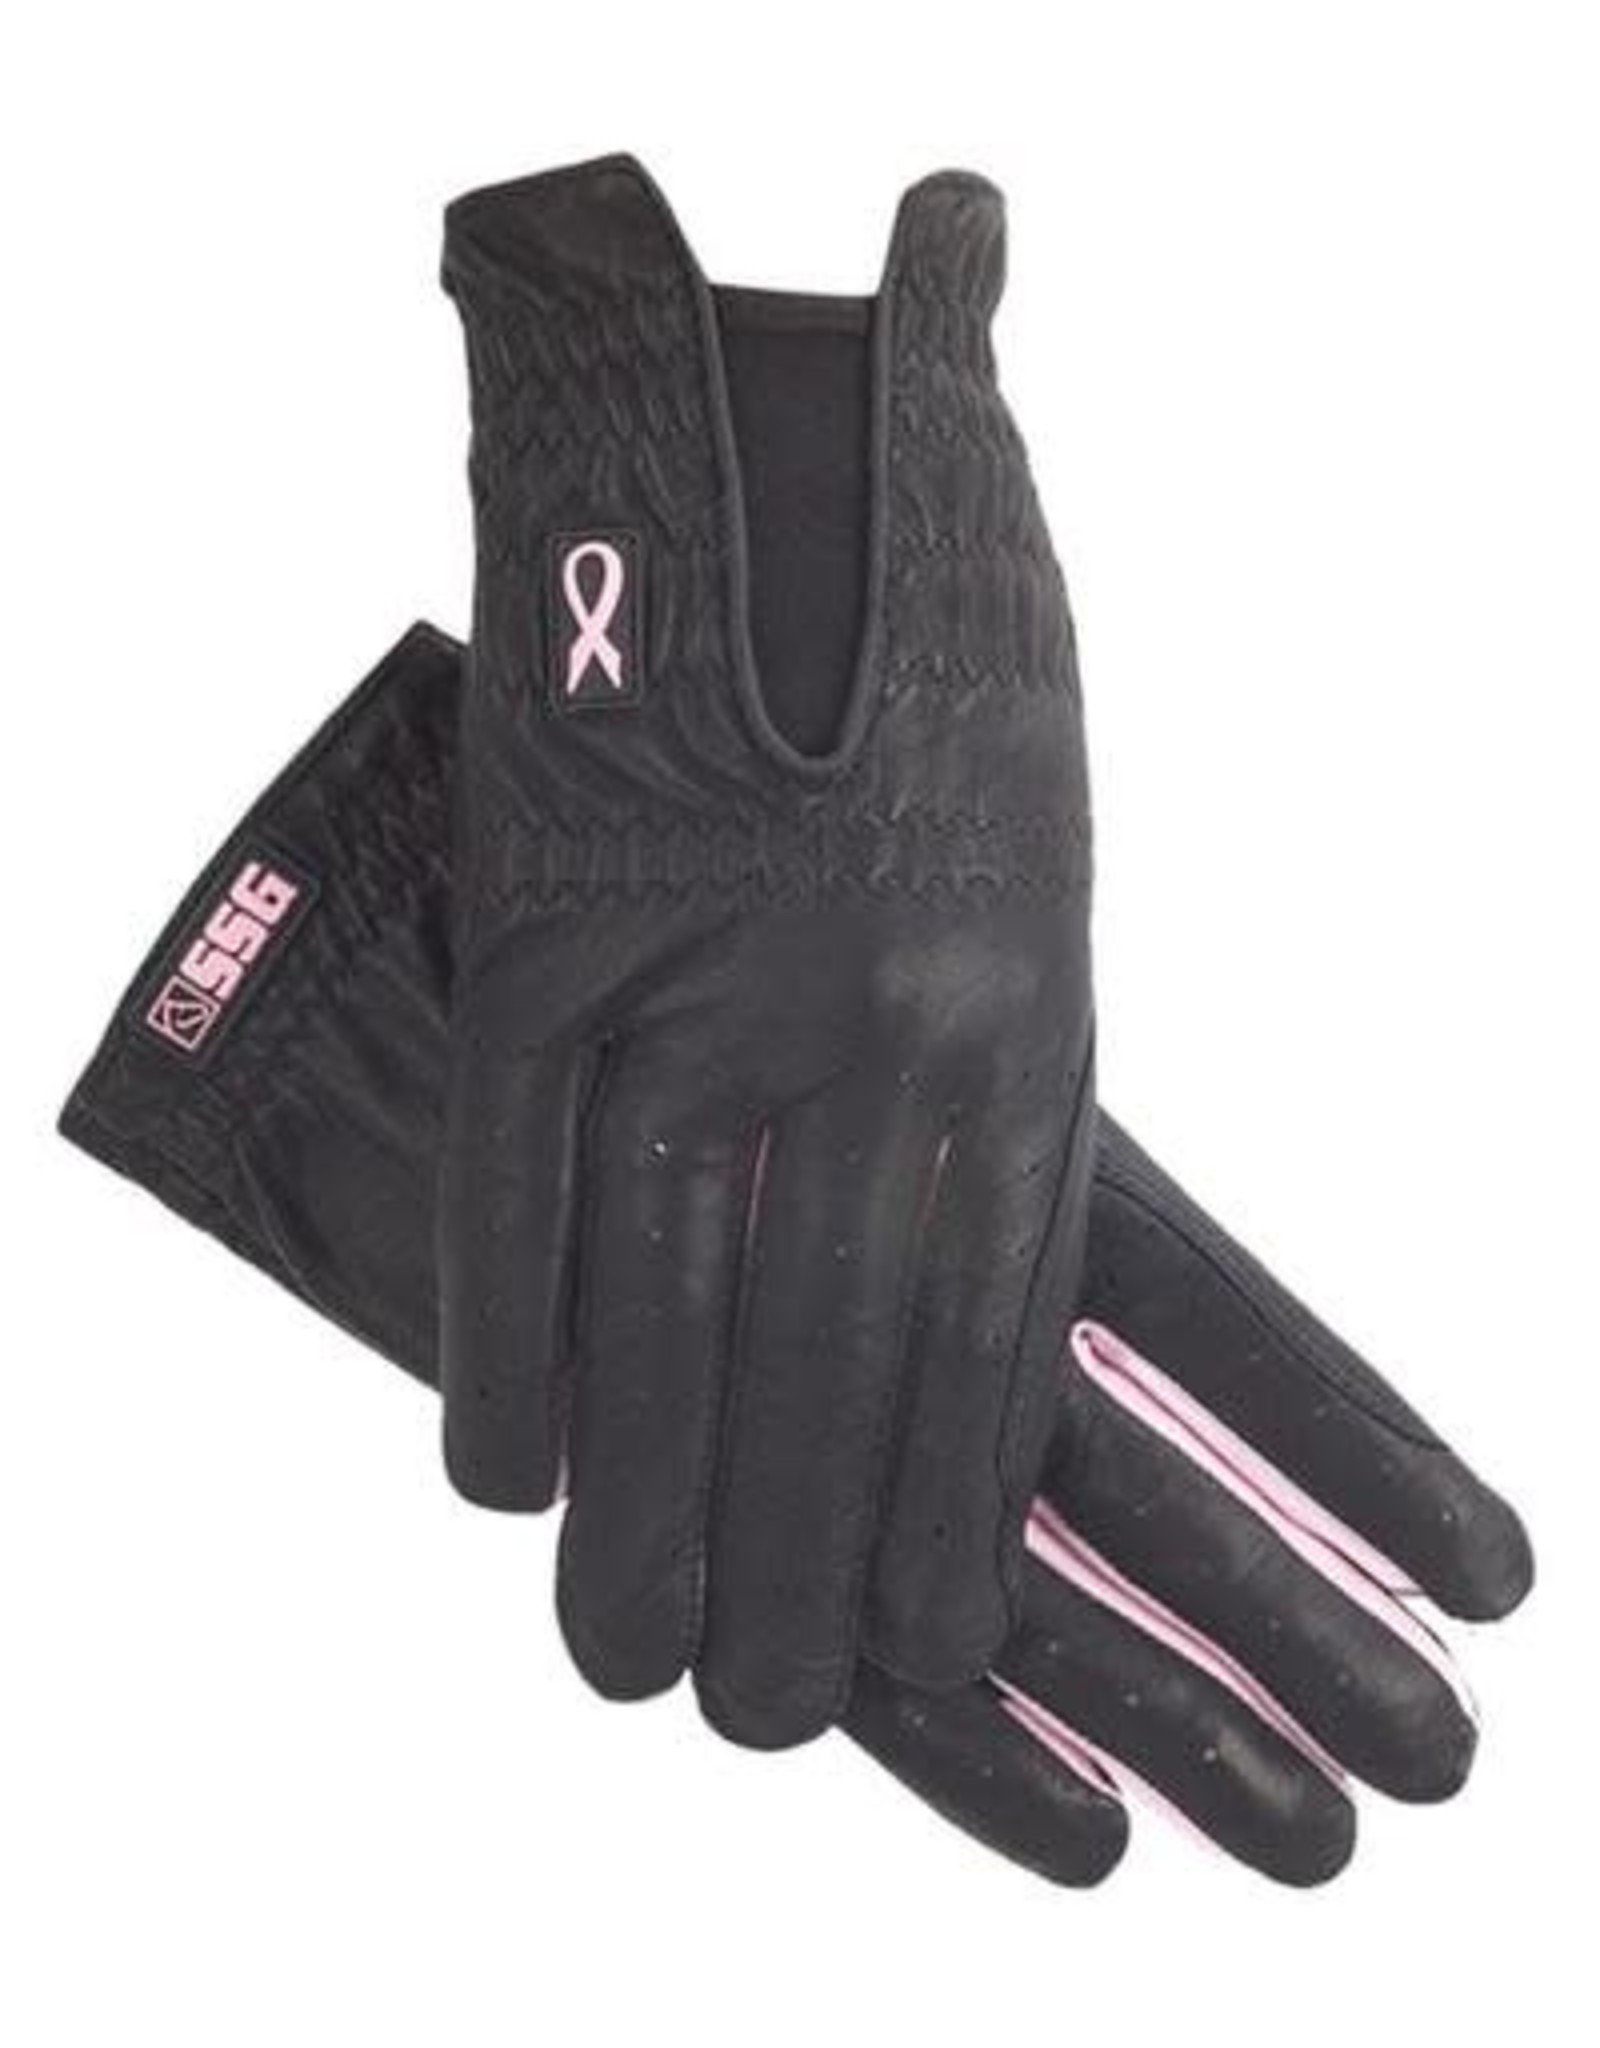 SSG SSG Riding Gloves ' for Hope' Cabretta Leather Spandex Gussets - Black - 7.5